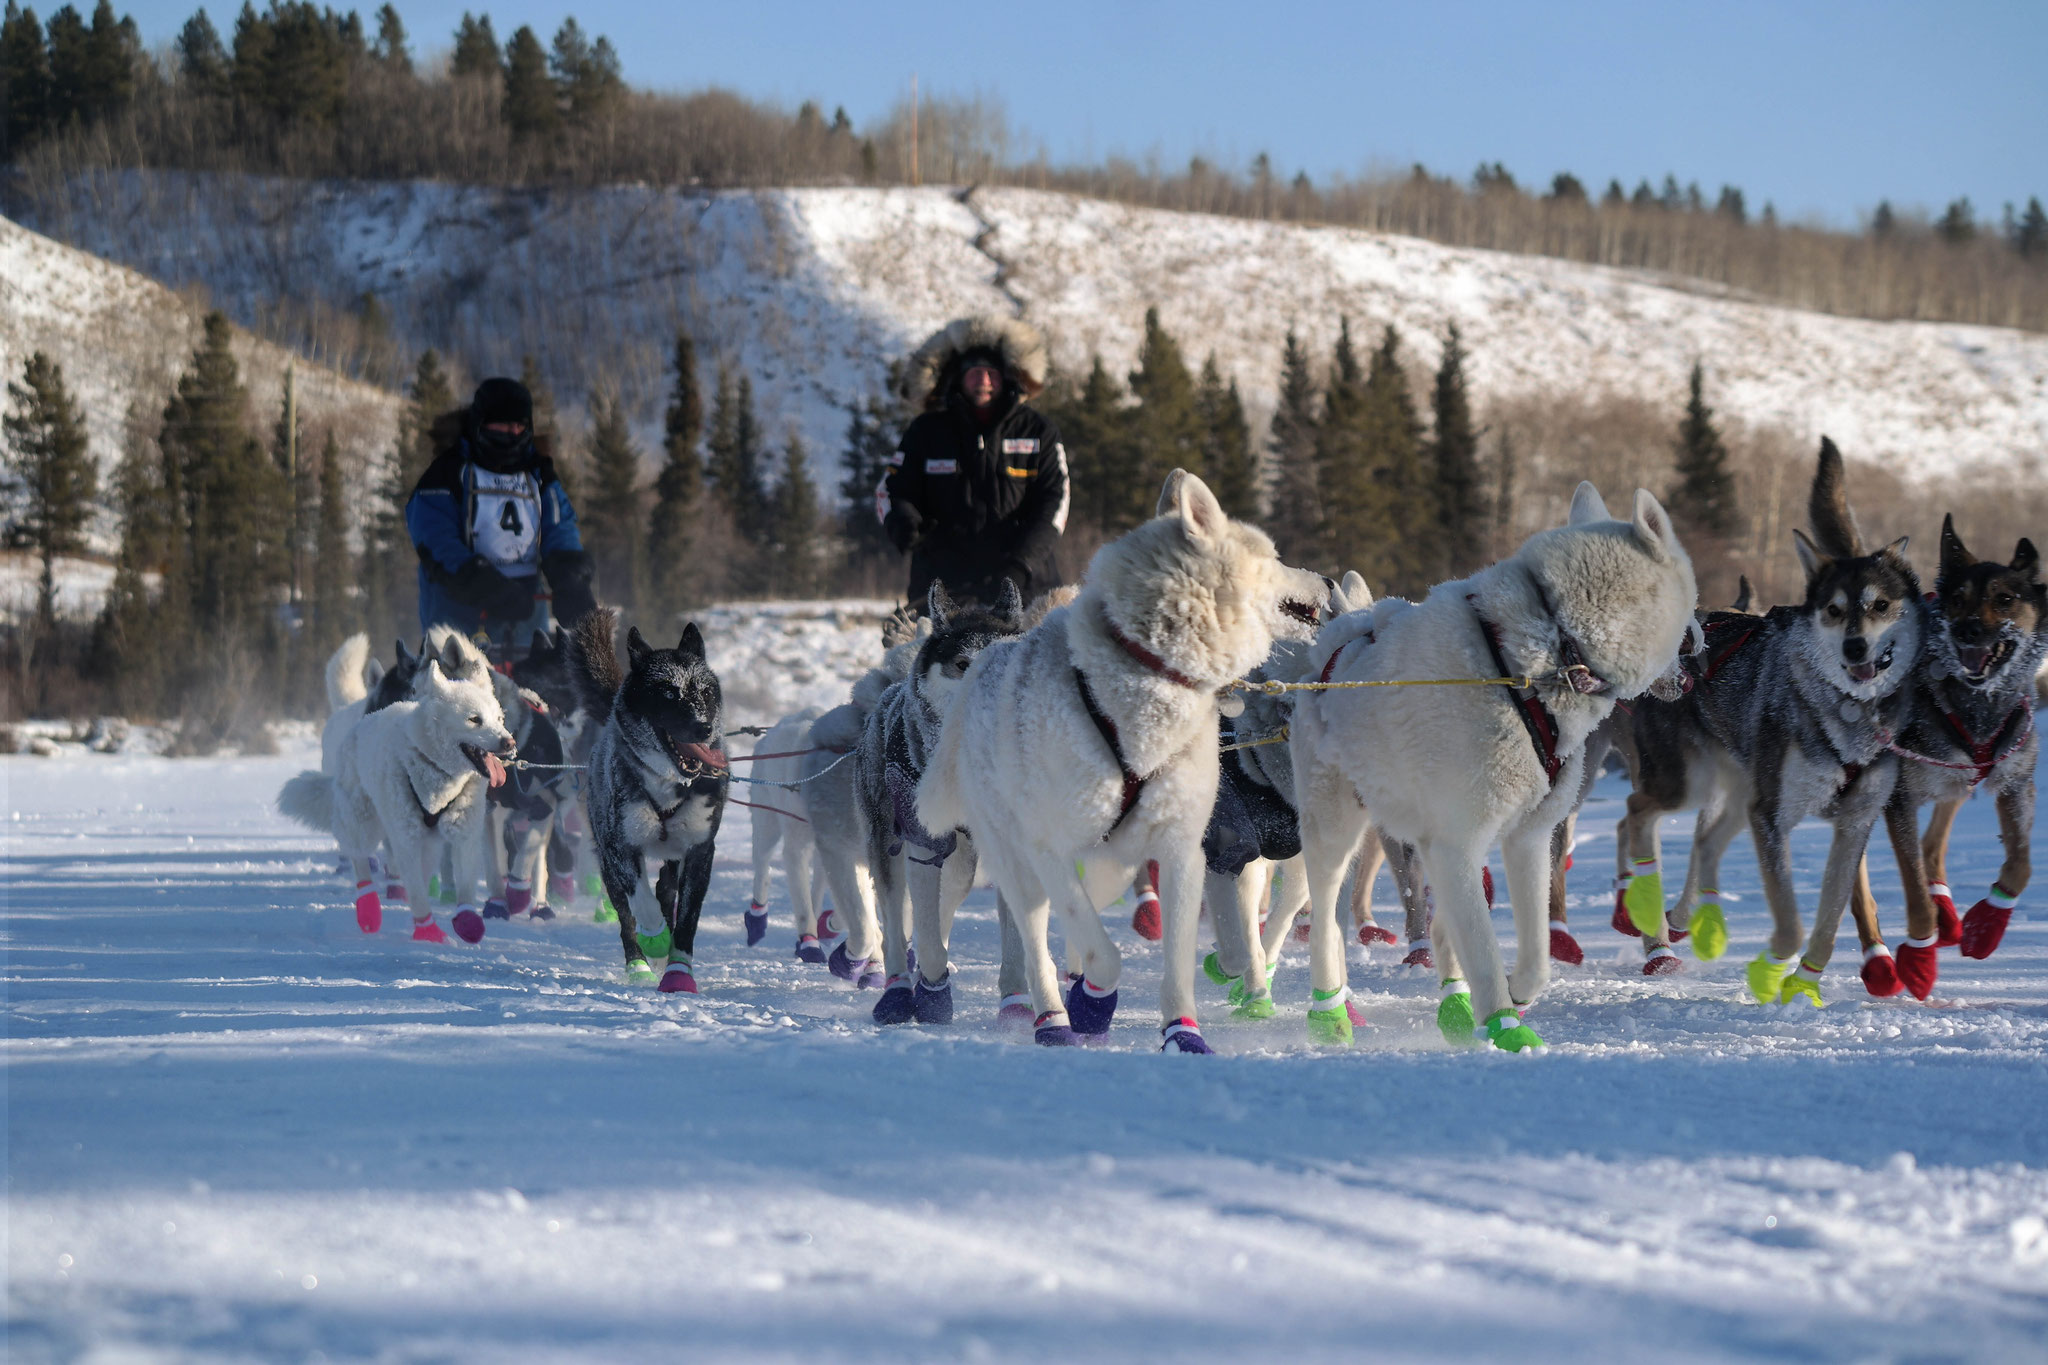 Yes he will! The second dog sled team overtakes!